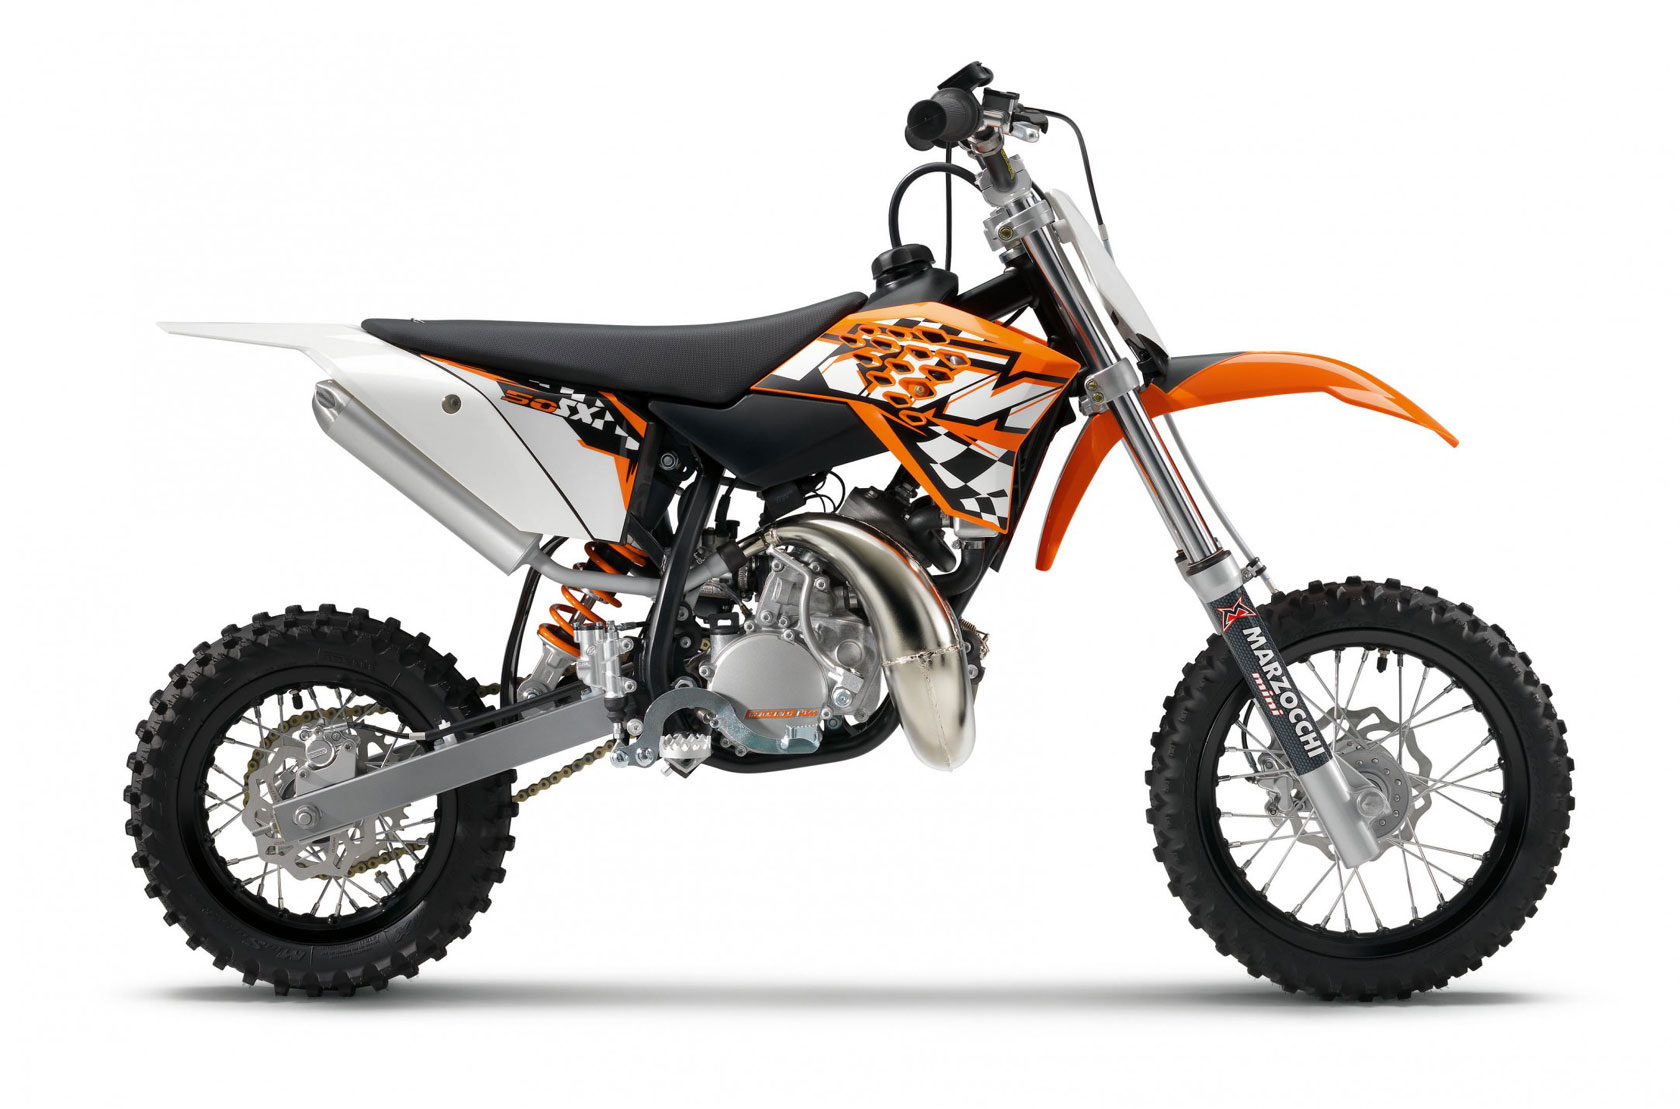 ktm 50 sx fiche technique avis et prix la poign e dans l 39 angle. Black Bedroom Furniture Sets. Home Design Ideas